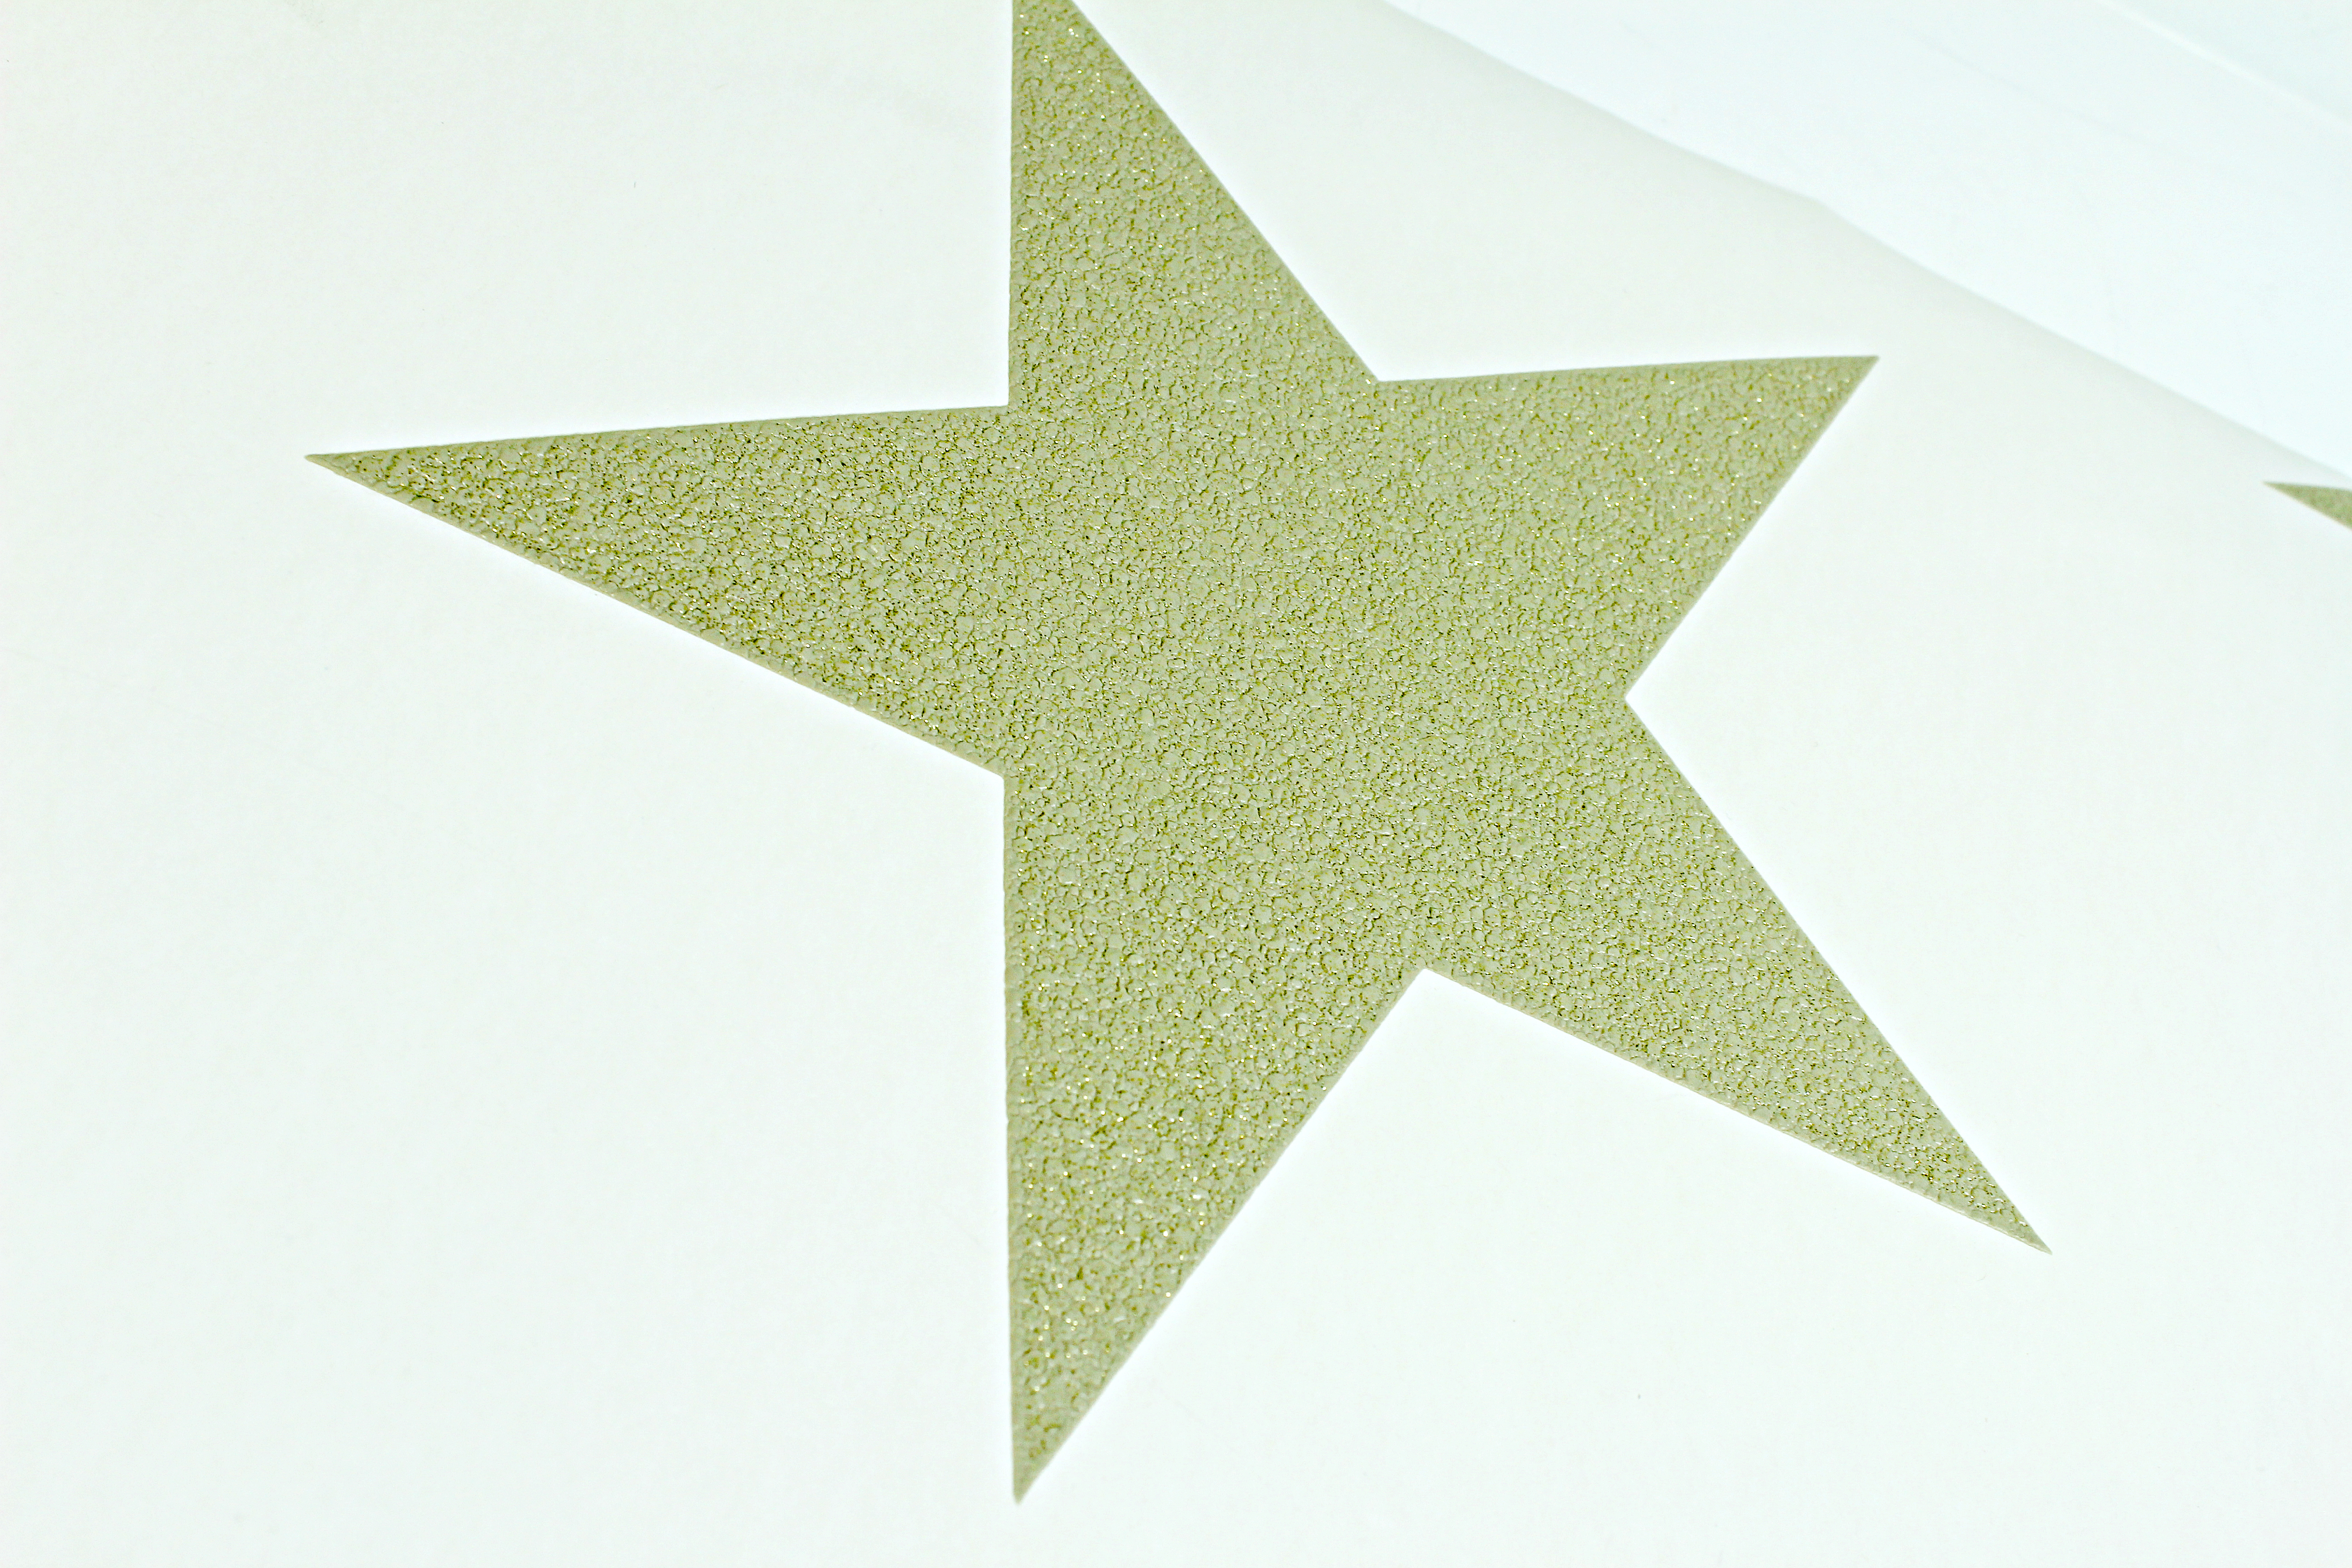 Details About Gold Star Wallpaper Cream Embossed Textured Glitter Stars Simple Luxury Arthouse